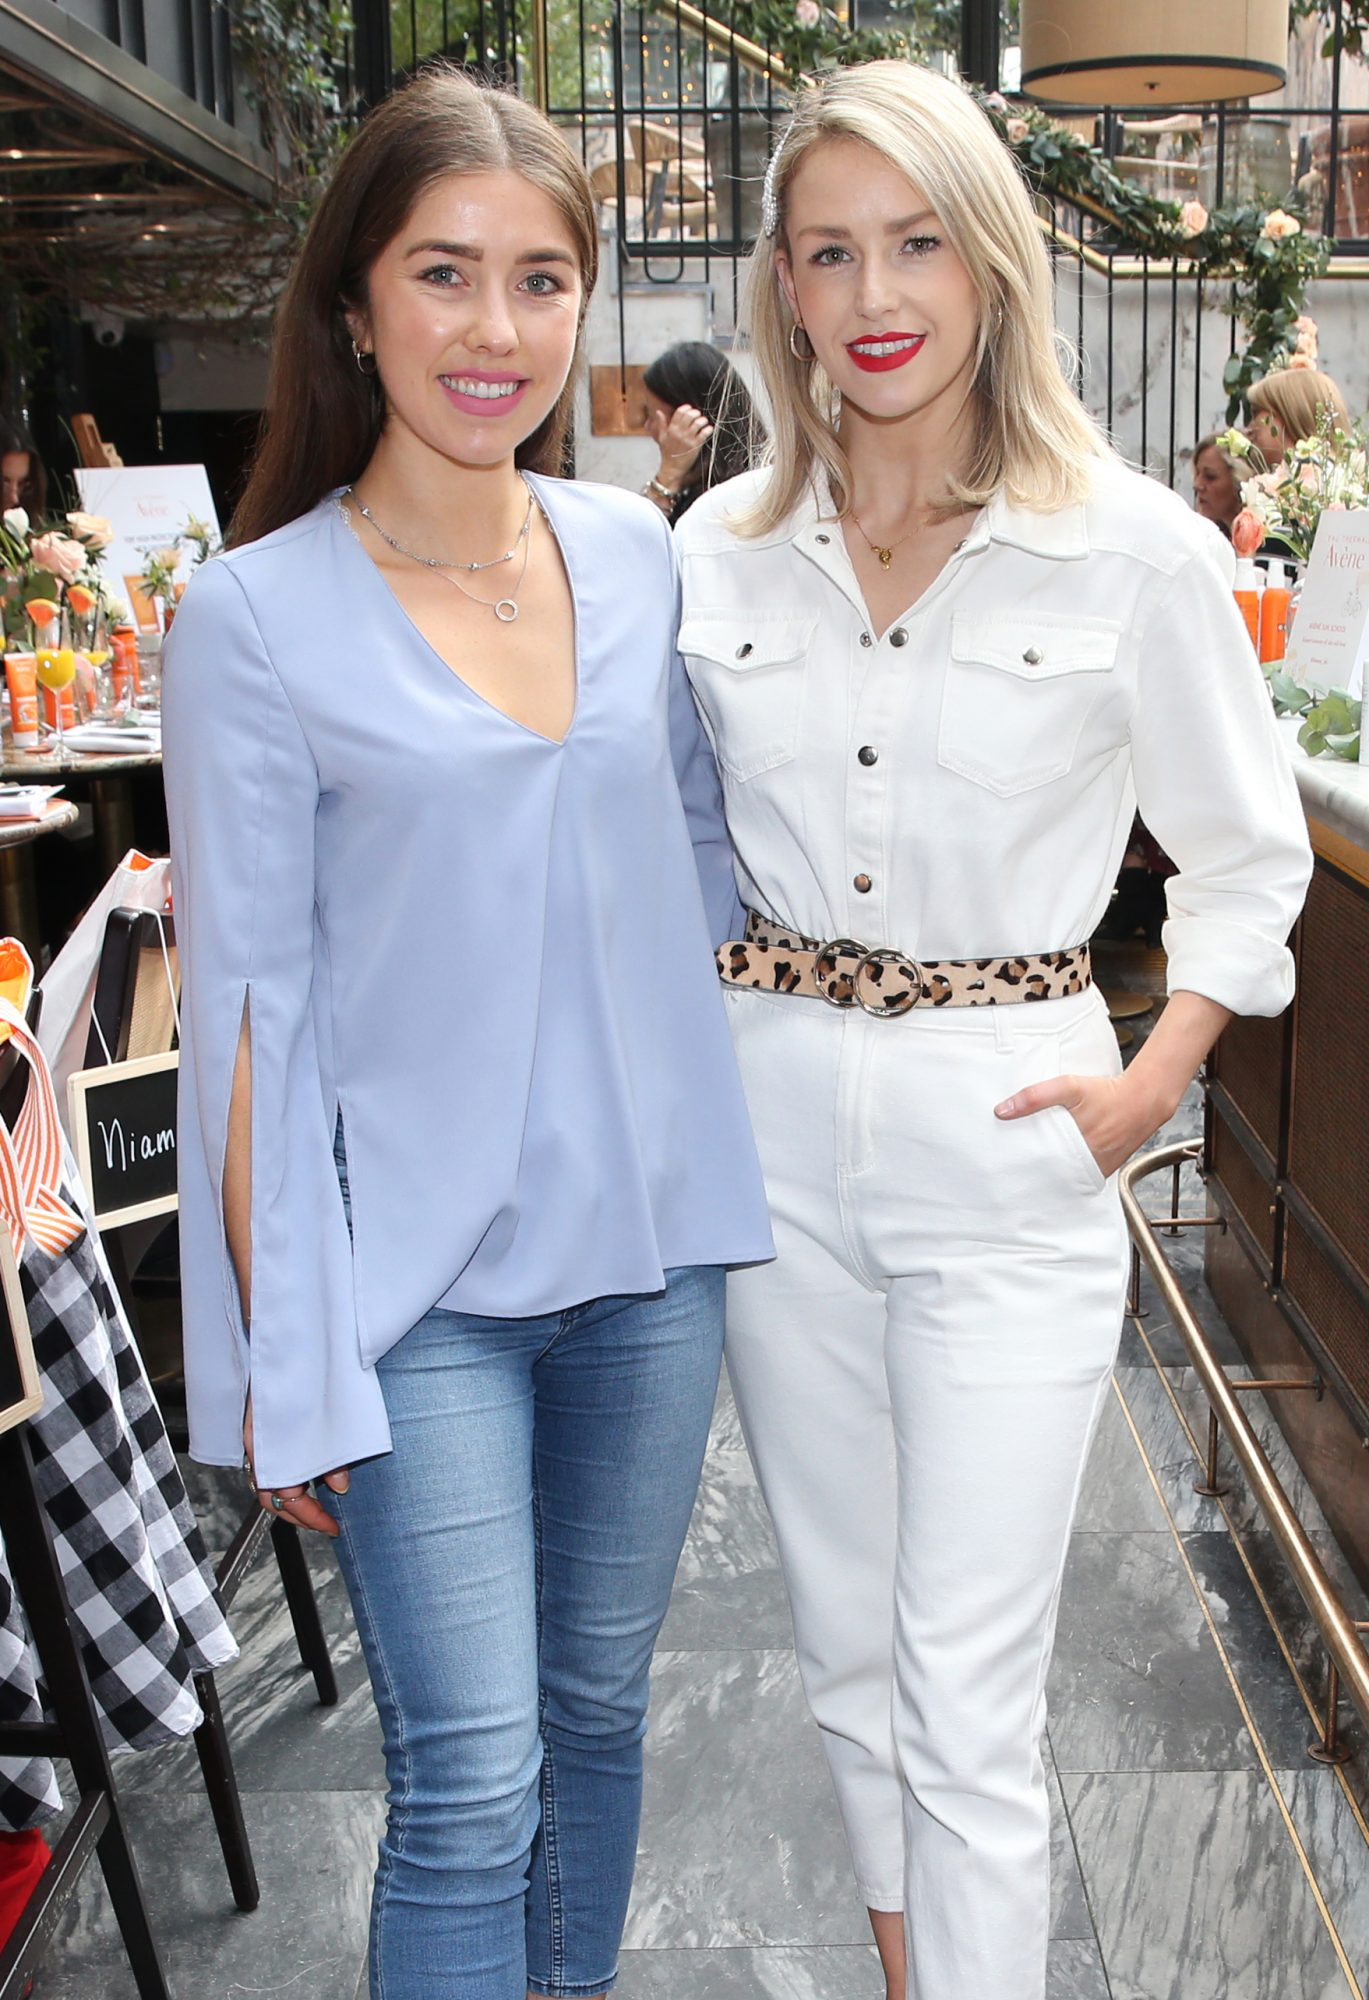 Pictured is Erica Bracken and Lia Stokes at the launch of the new Avène Expert Suncare Range in The Grayson Dublin. The new range of suncare from the French brand is suitable for all skin types and includes a Sports Sun Cream, a City Shield BB Style High Protection Face Cream, two new SPF Body Sprays and a new Very High Protection Children's SPF. For more information visit www.avene.ie. Photo: Leon Farrell/Photocall Ireland.